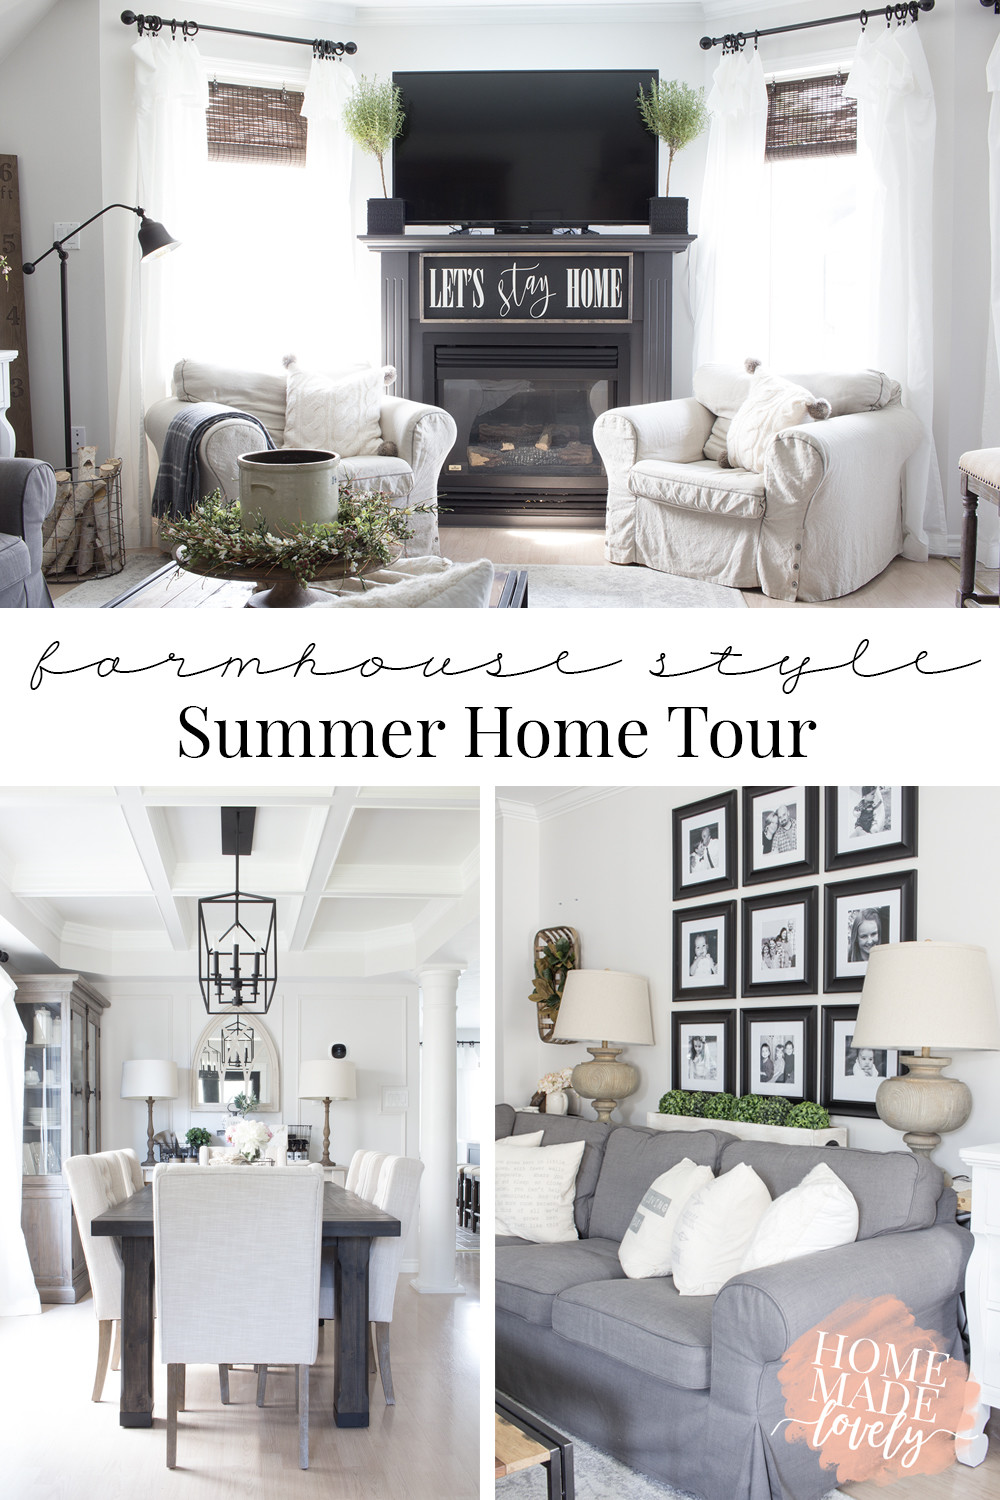 Love farmhouse style? Here's the farmhouse style summer home tour of our living room and dining room. Maybe it will give you some ideas for your own home this summer!